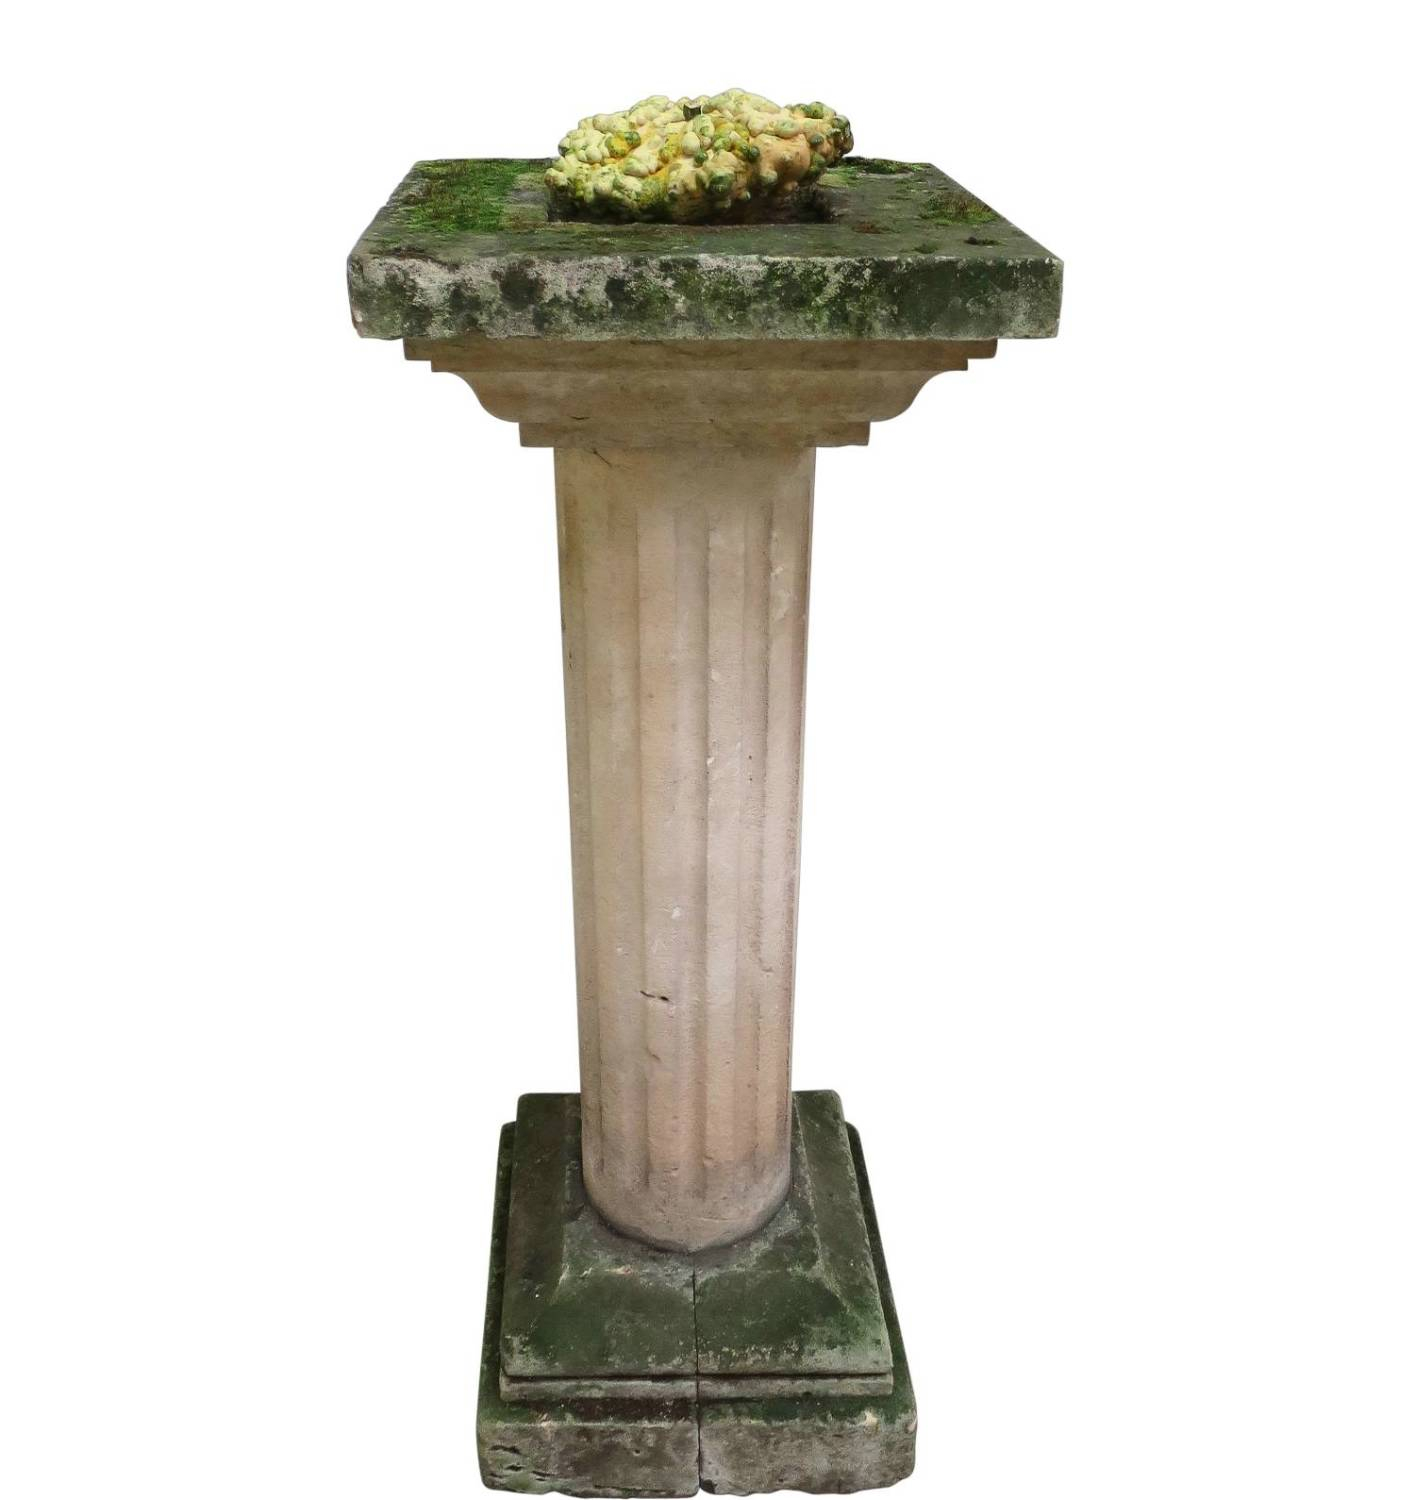 19th c French Stone Carved Bird Bath